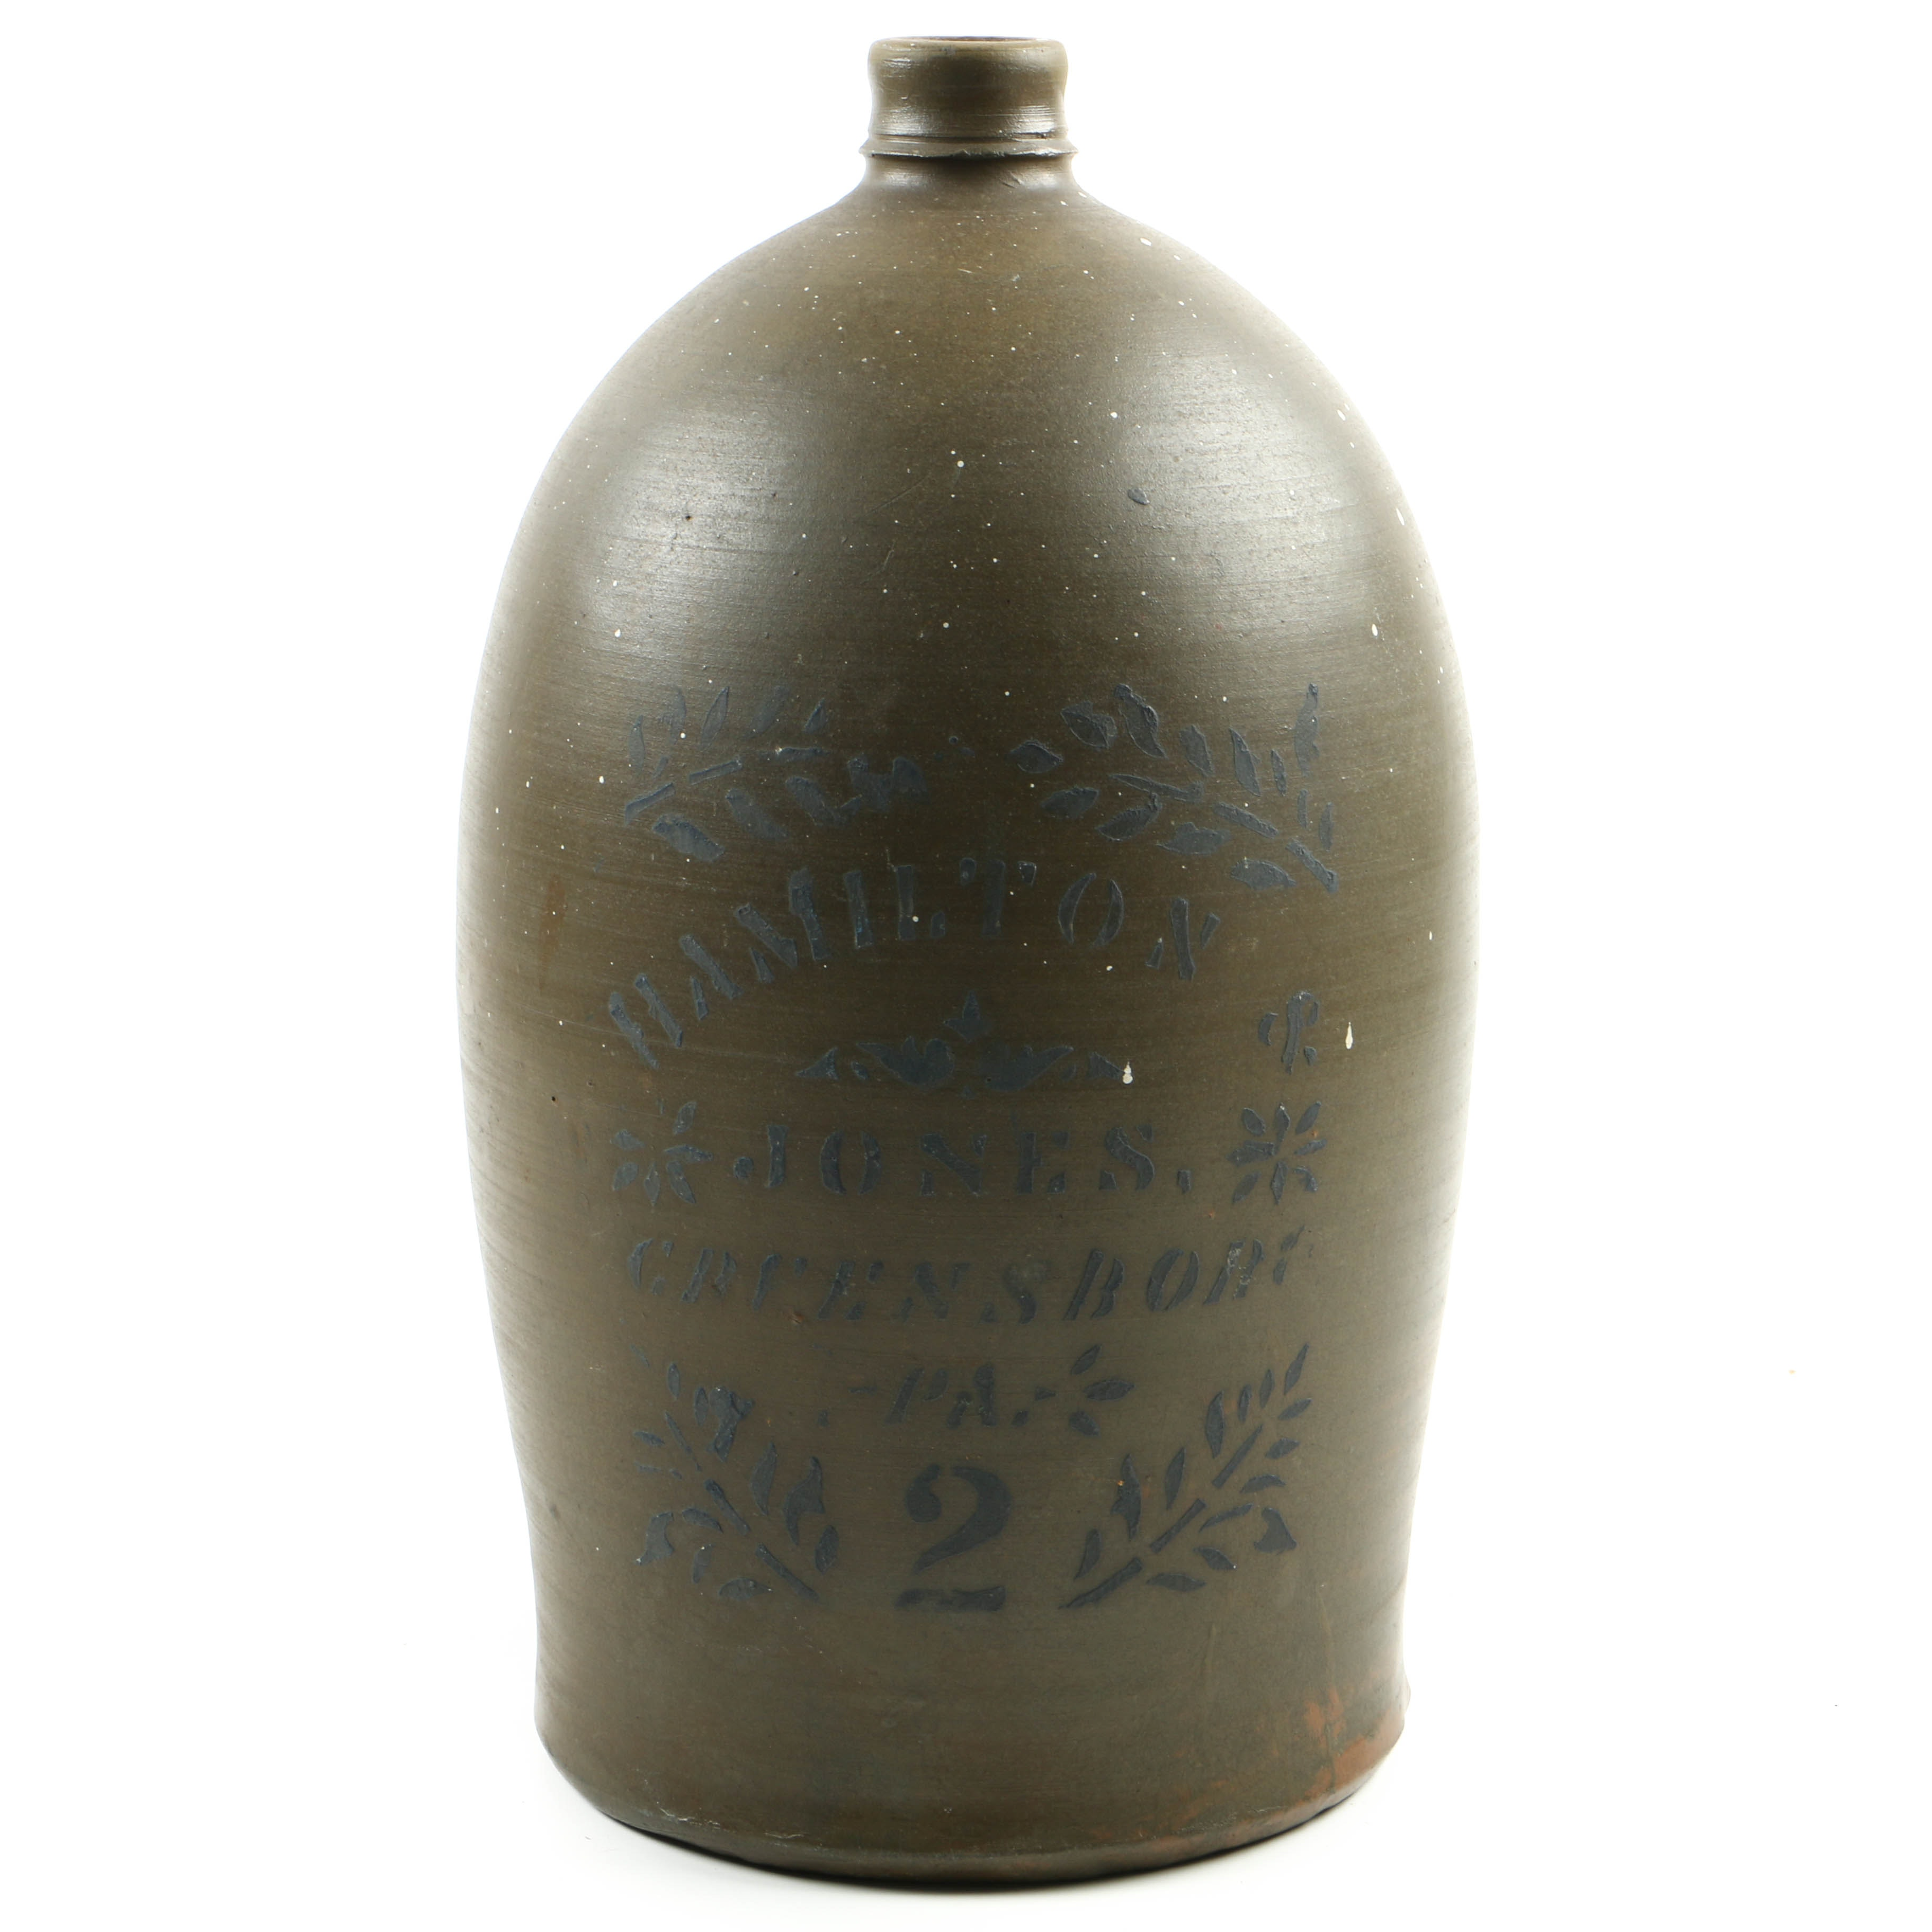 Antique Two-Gallon Stoneware Jug with Cobalt Stenciling by Hamilton & Jones